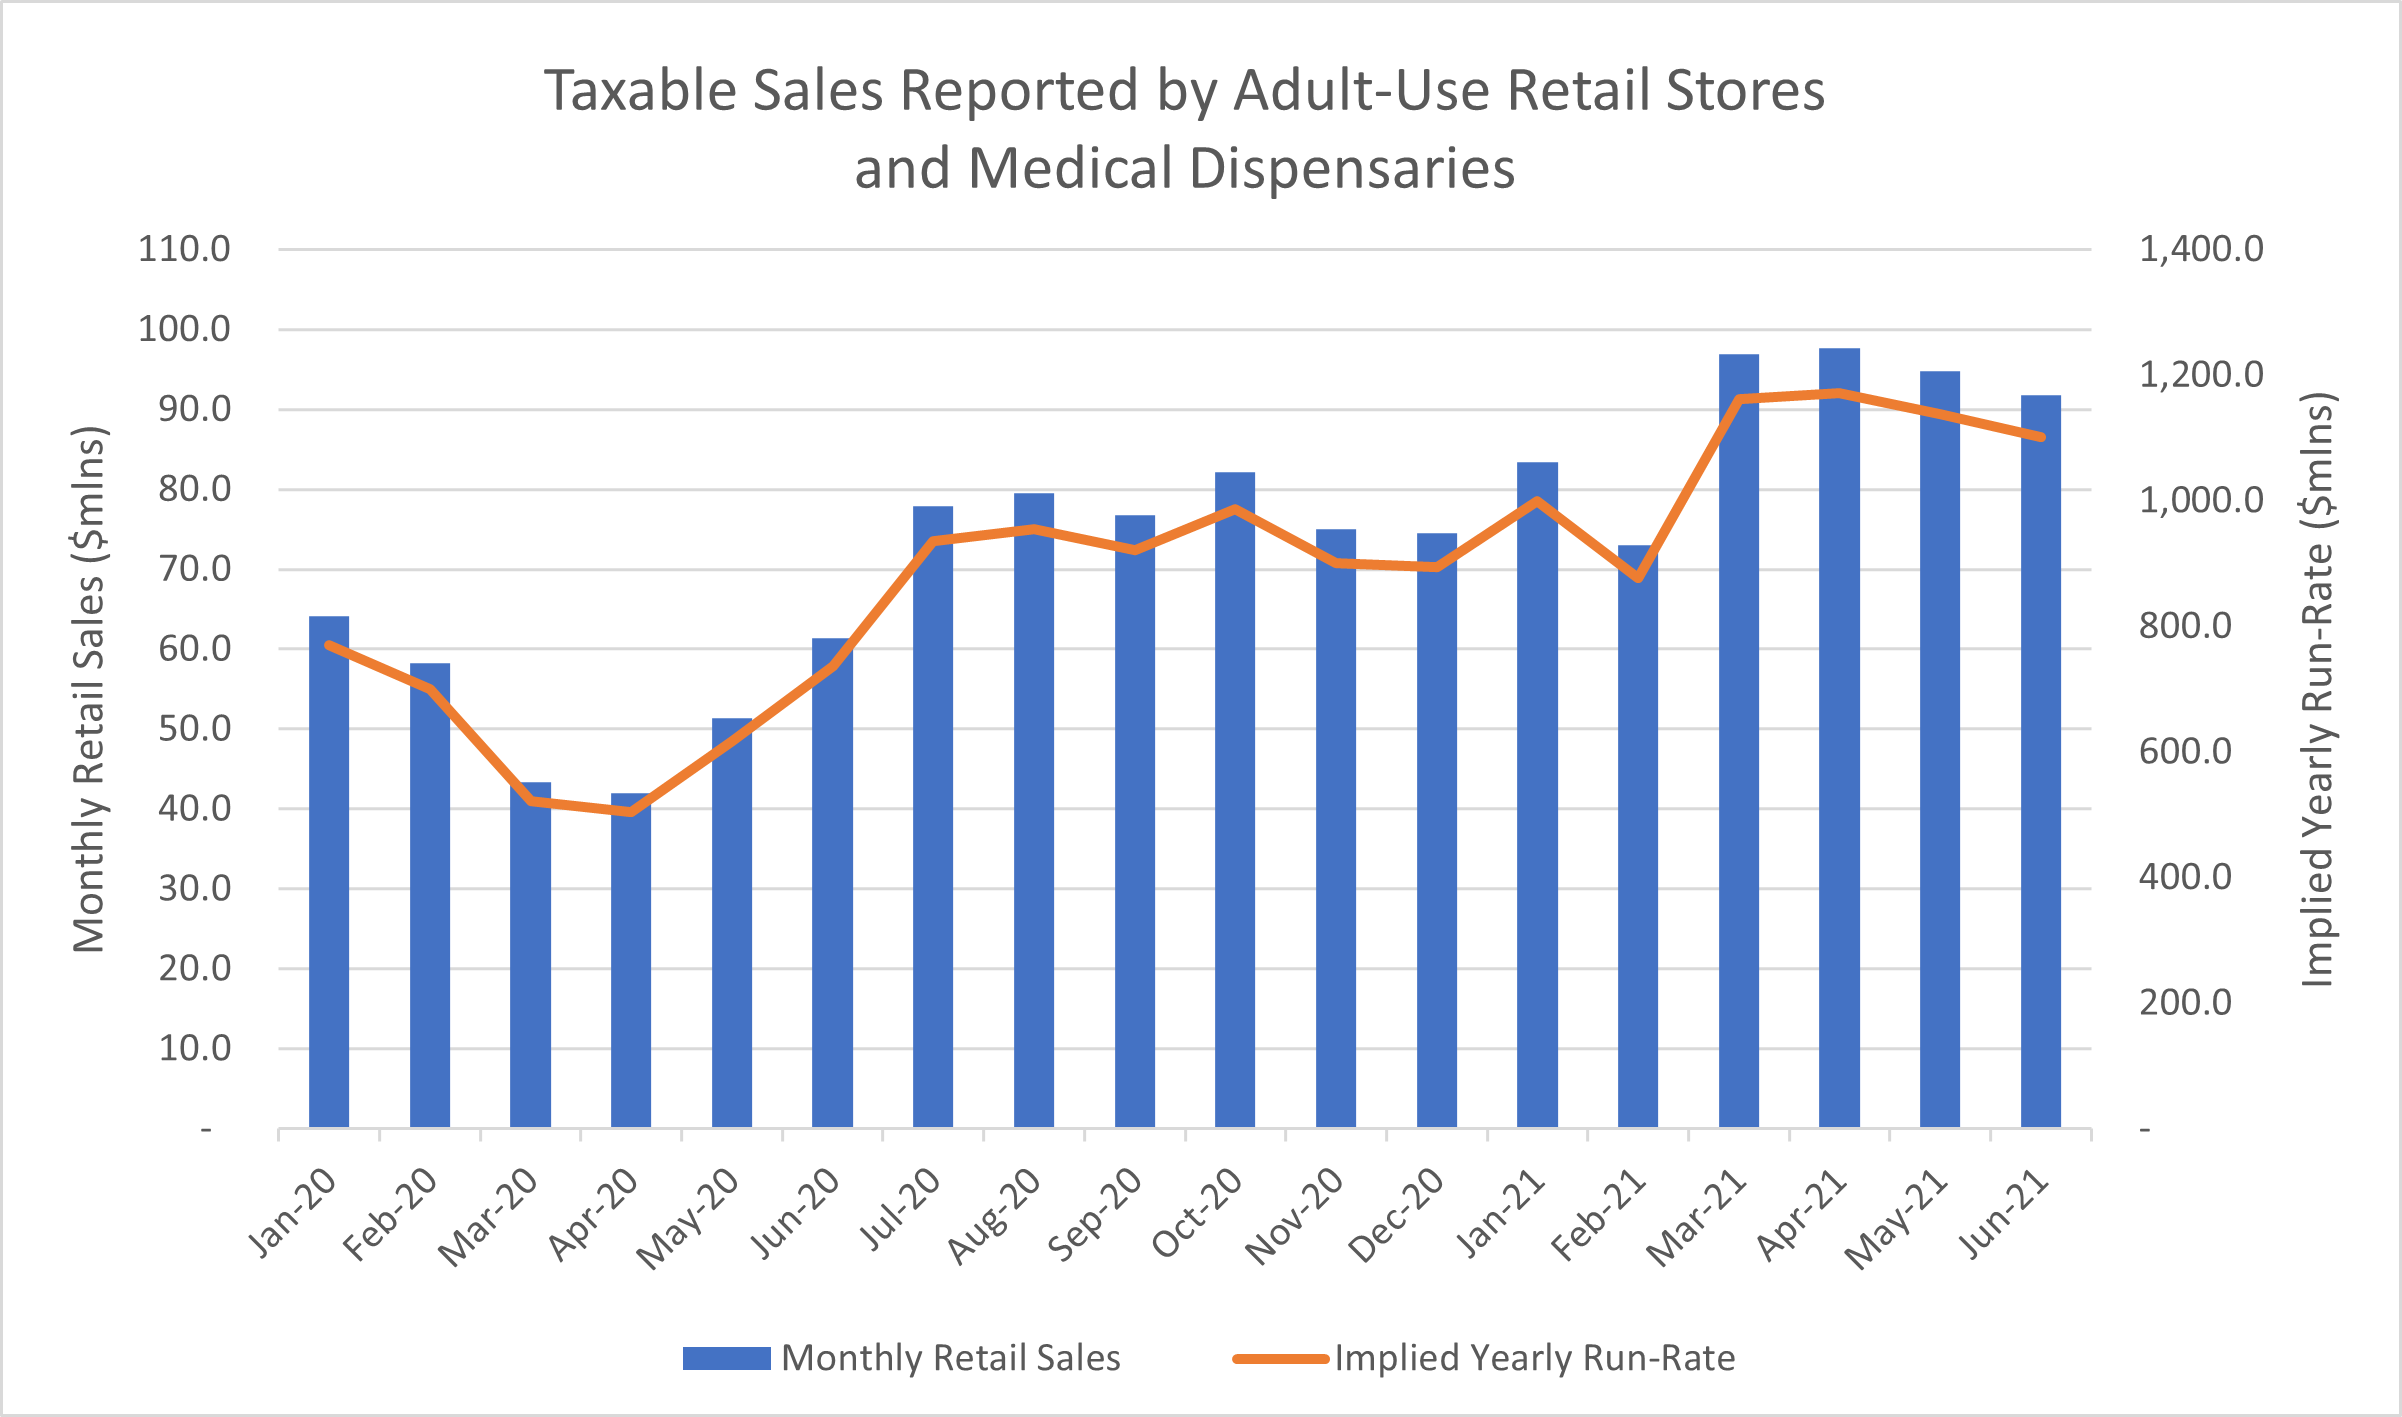 Taxable Sales Reported by Adult-Use Retail Stores and Medical Dispensaries